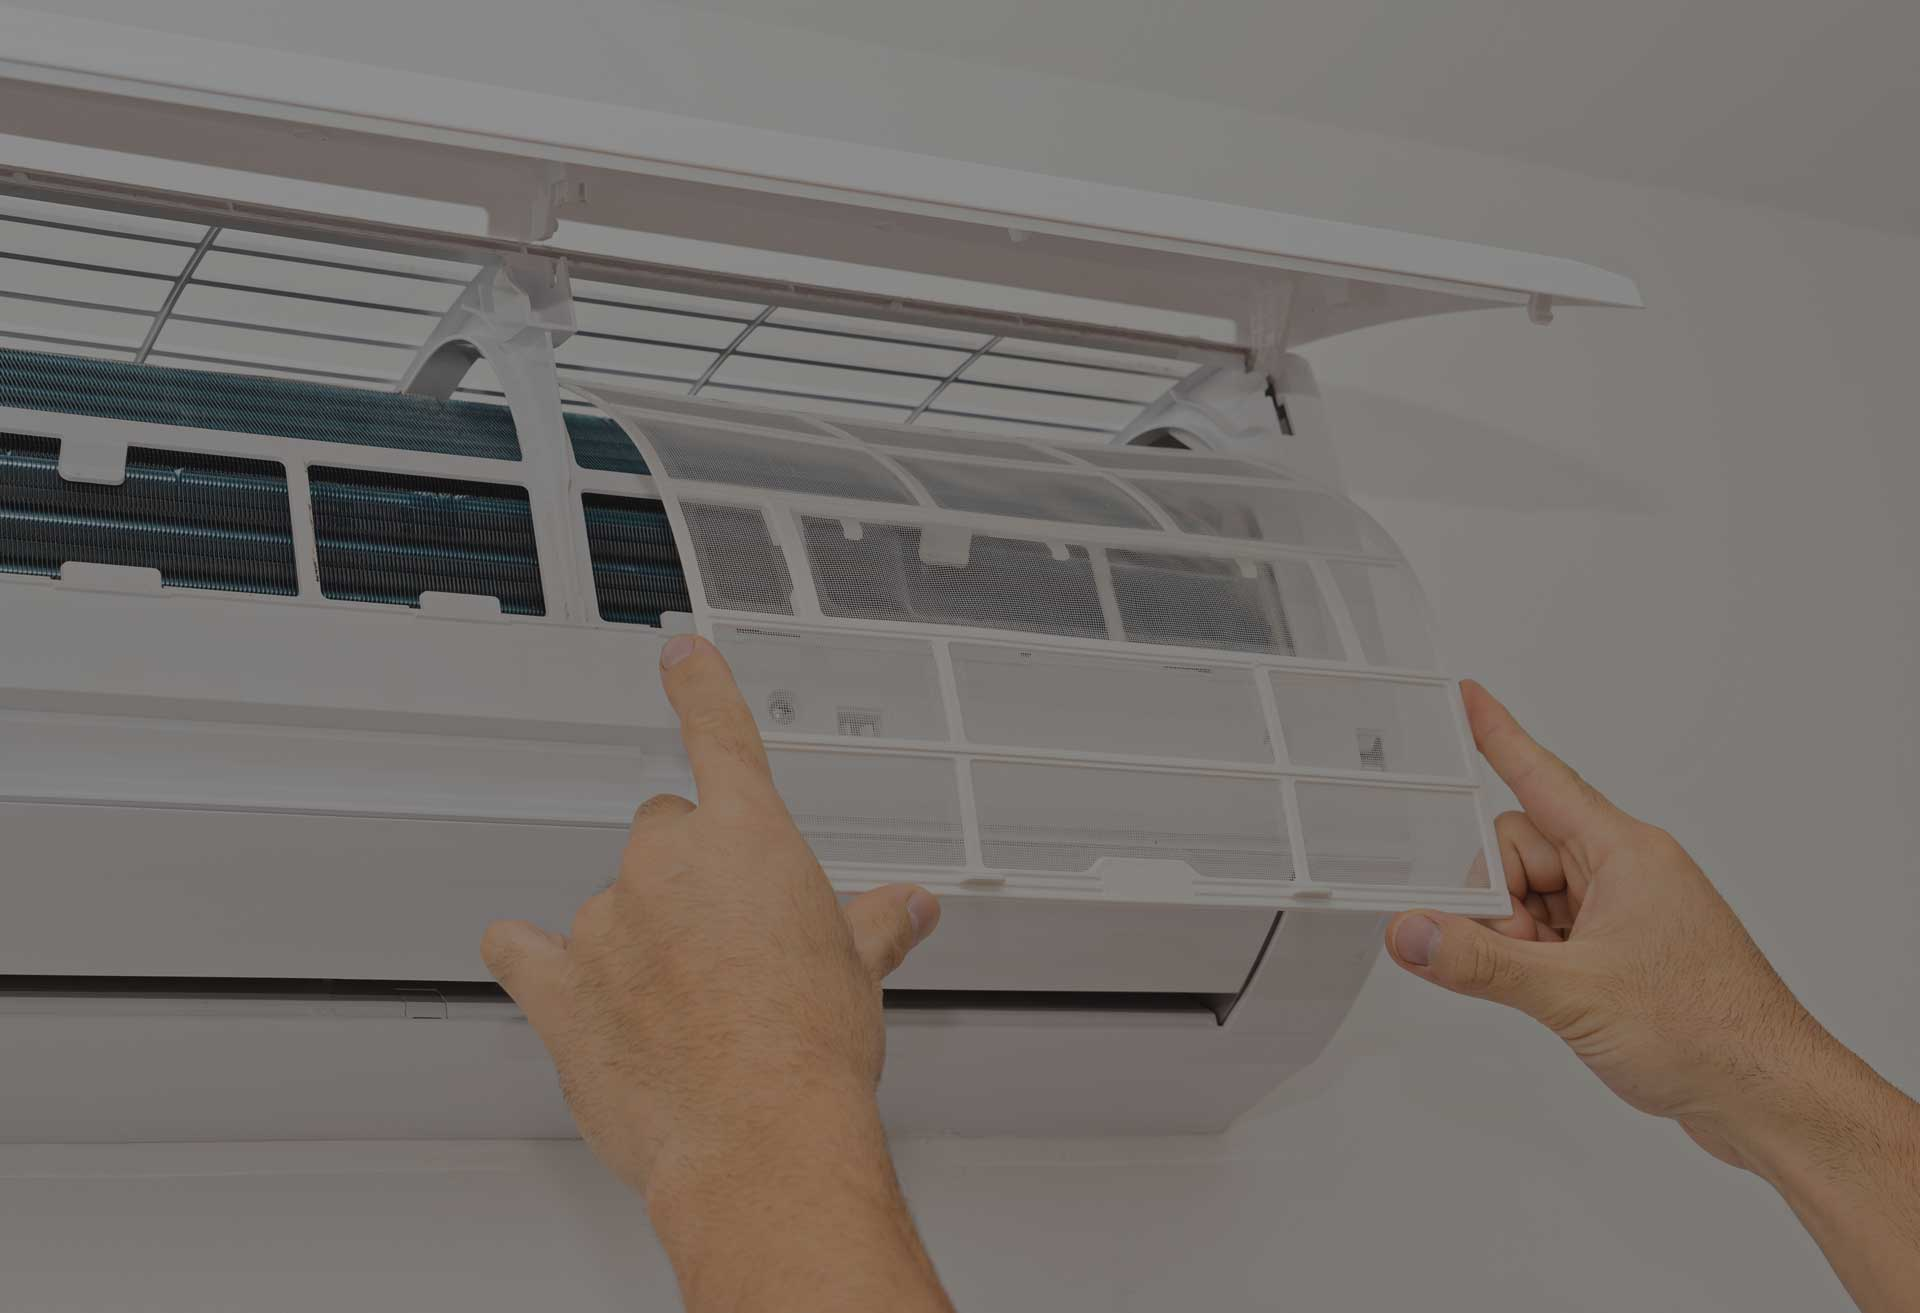 person placing screen on heater